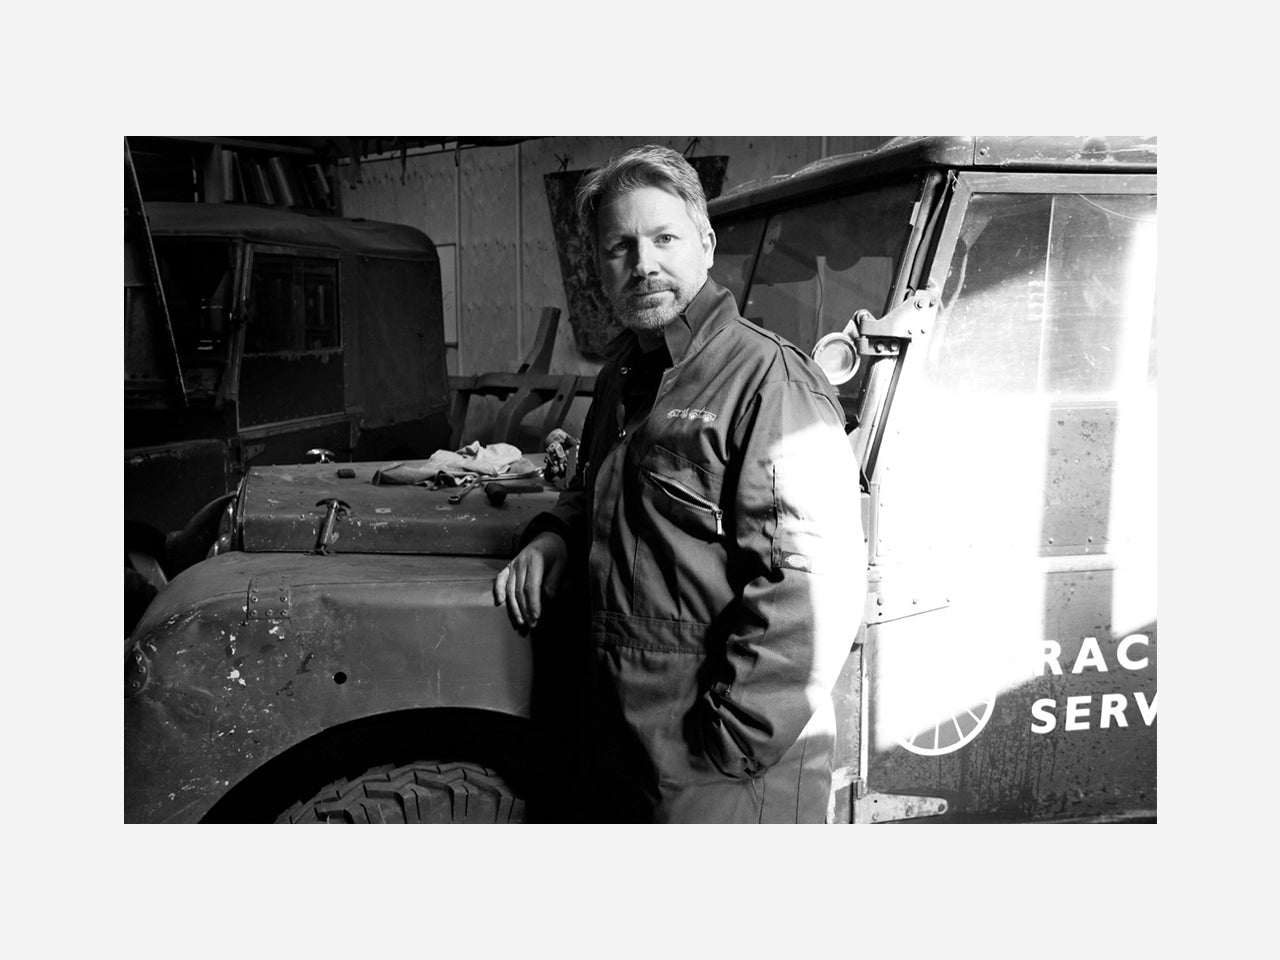 Julian Shoolheifer in his workshop with a Land Rover he has been restoring